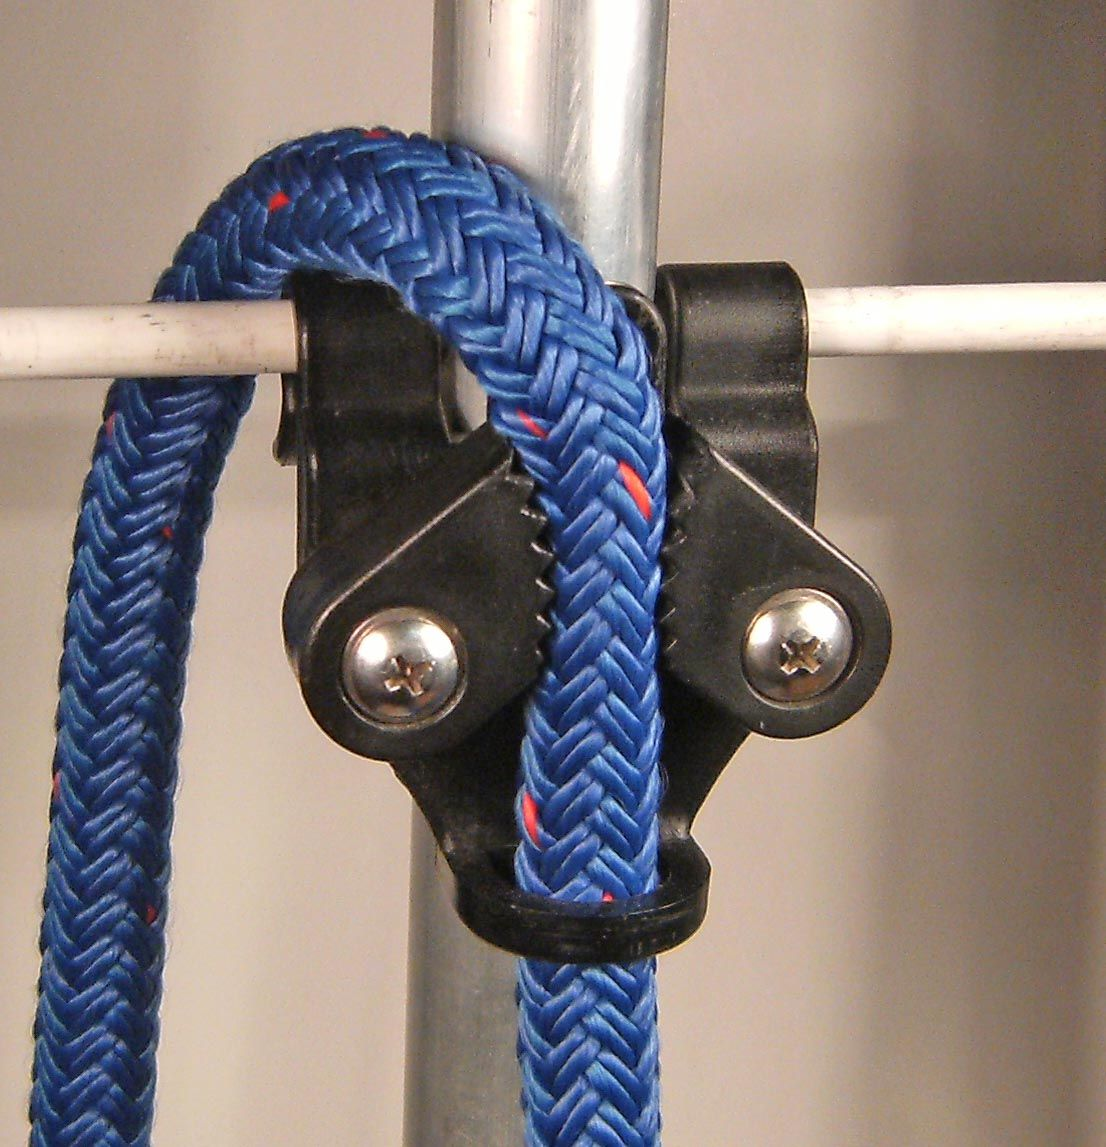 Fender adjusters allow for easy hanging of fenders with